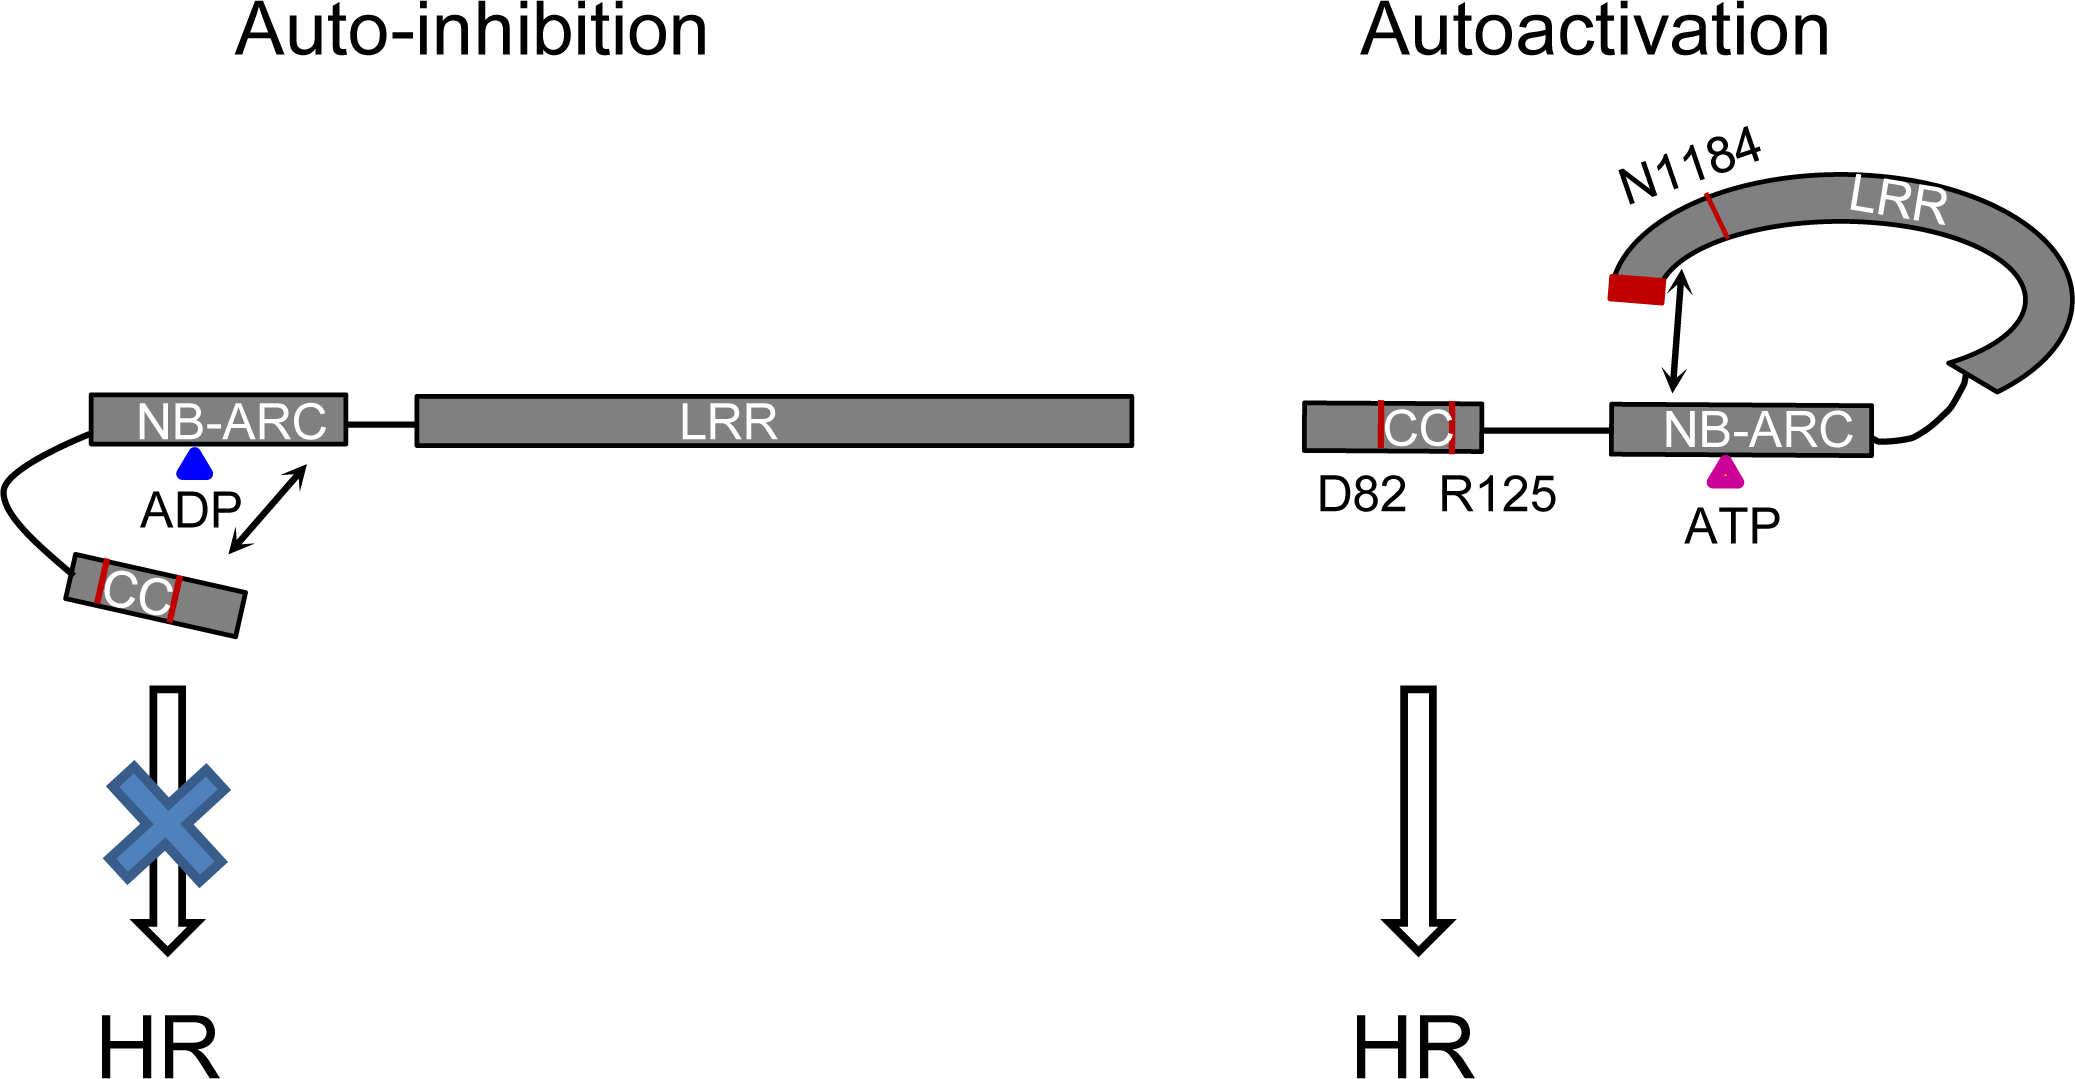 Model of the intra-molecular interactions controlling auto-inhibition or auto-activation in Rp1 proteins.